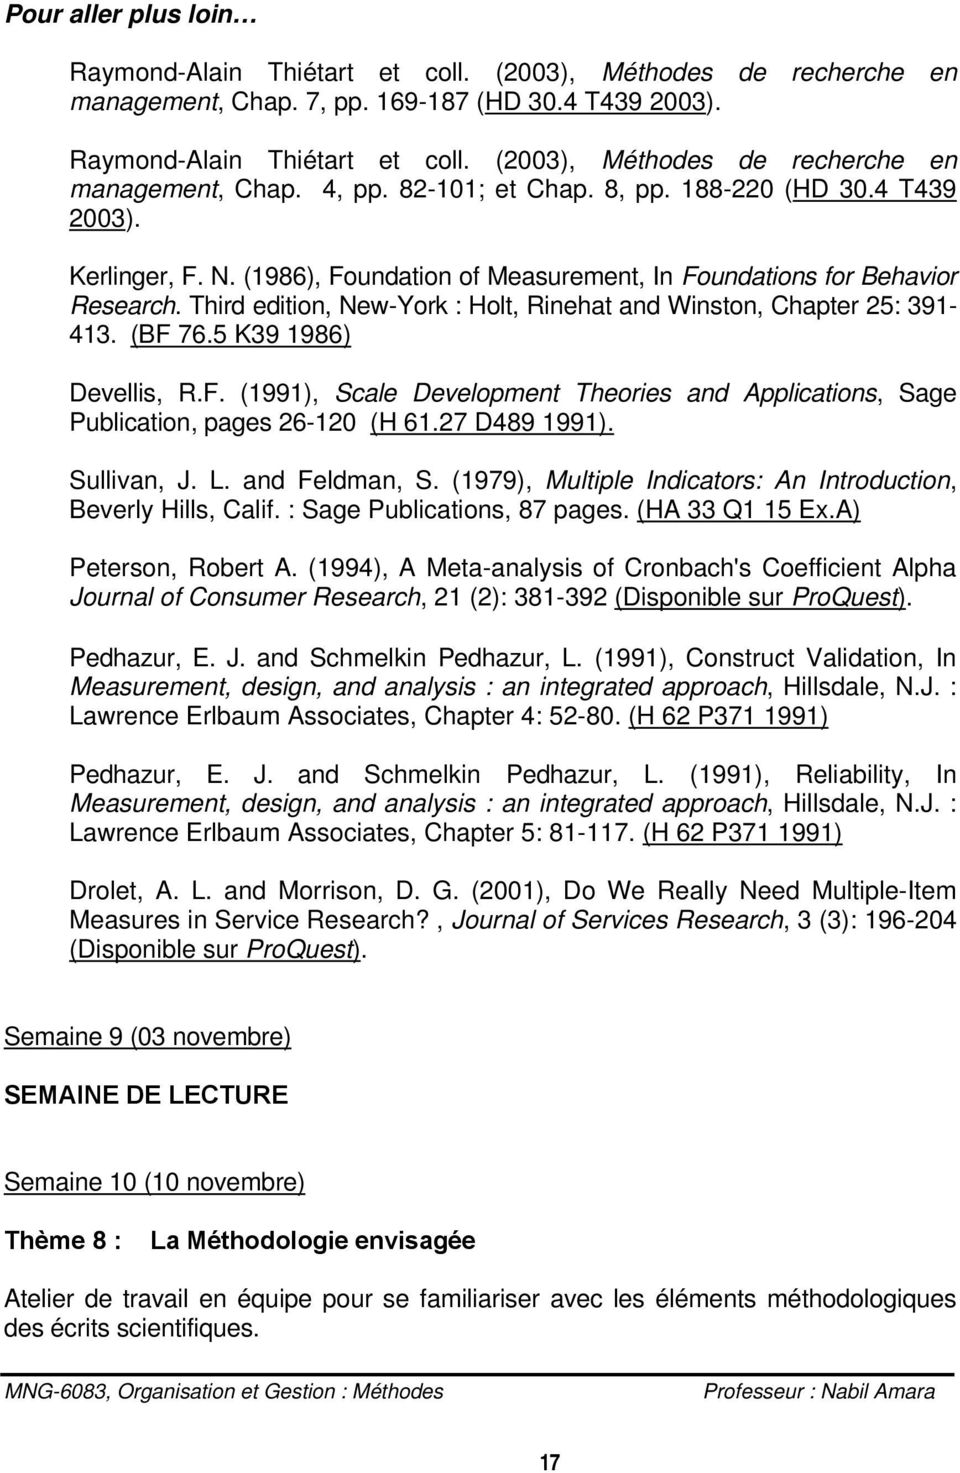 Third edition, New-York : Holt, Rinehat and Winston, Chapter 25: 391-413. (BF 76.5 K39 1986) Devellis, R.F. (1991), Scale Development Theories and Applications, Sage Publication, pages 26-120 (H 61.